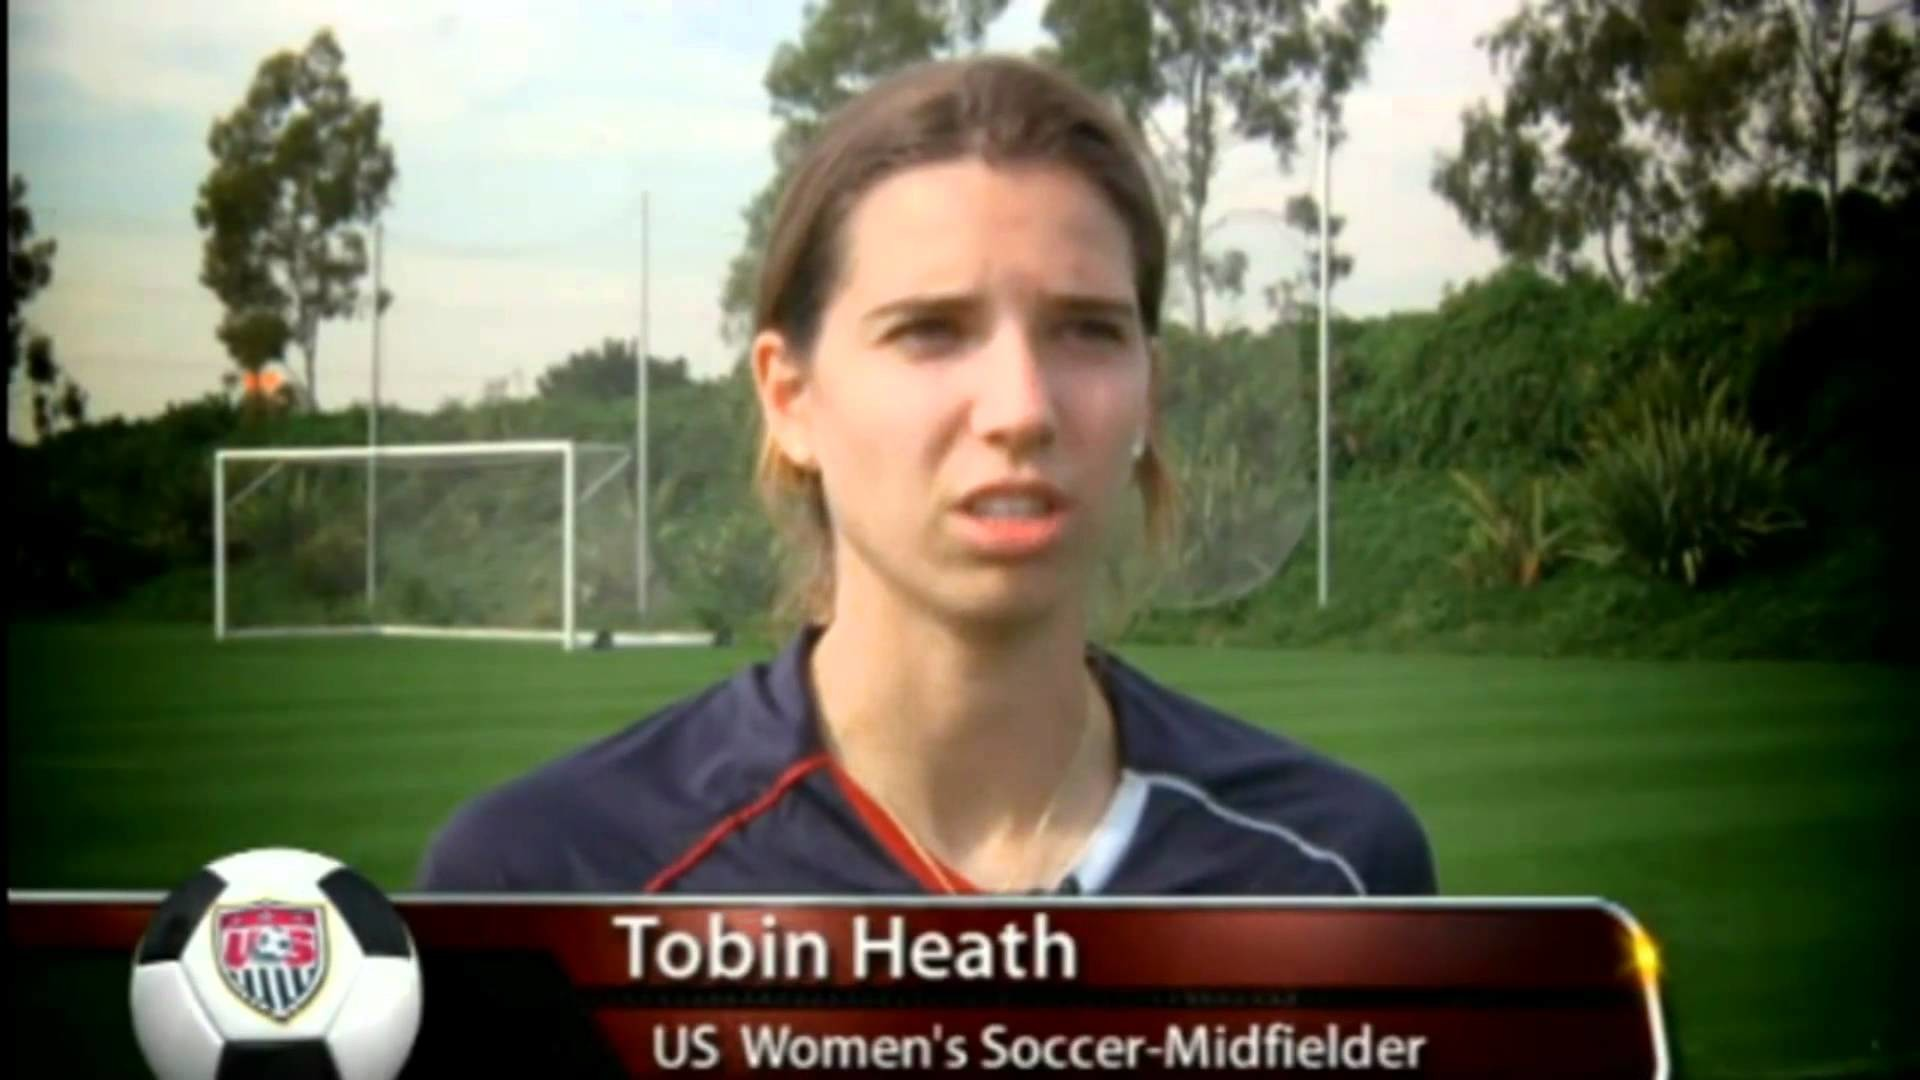 1920x1080 More Than Conquerors - Tobin Heath